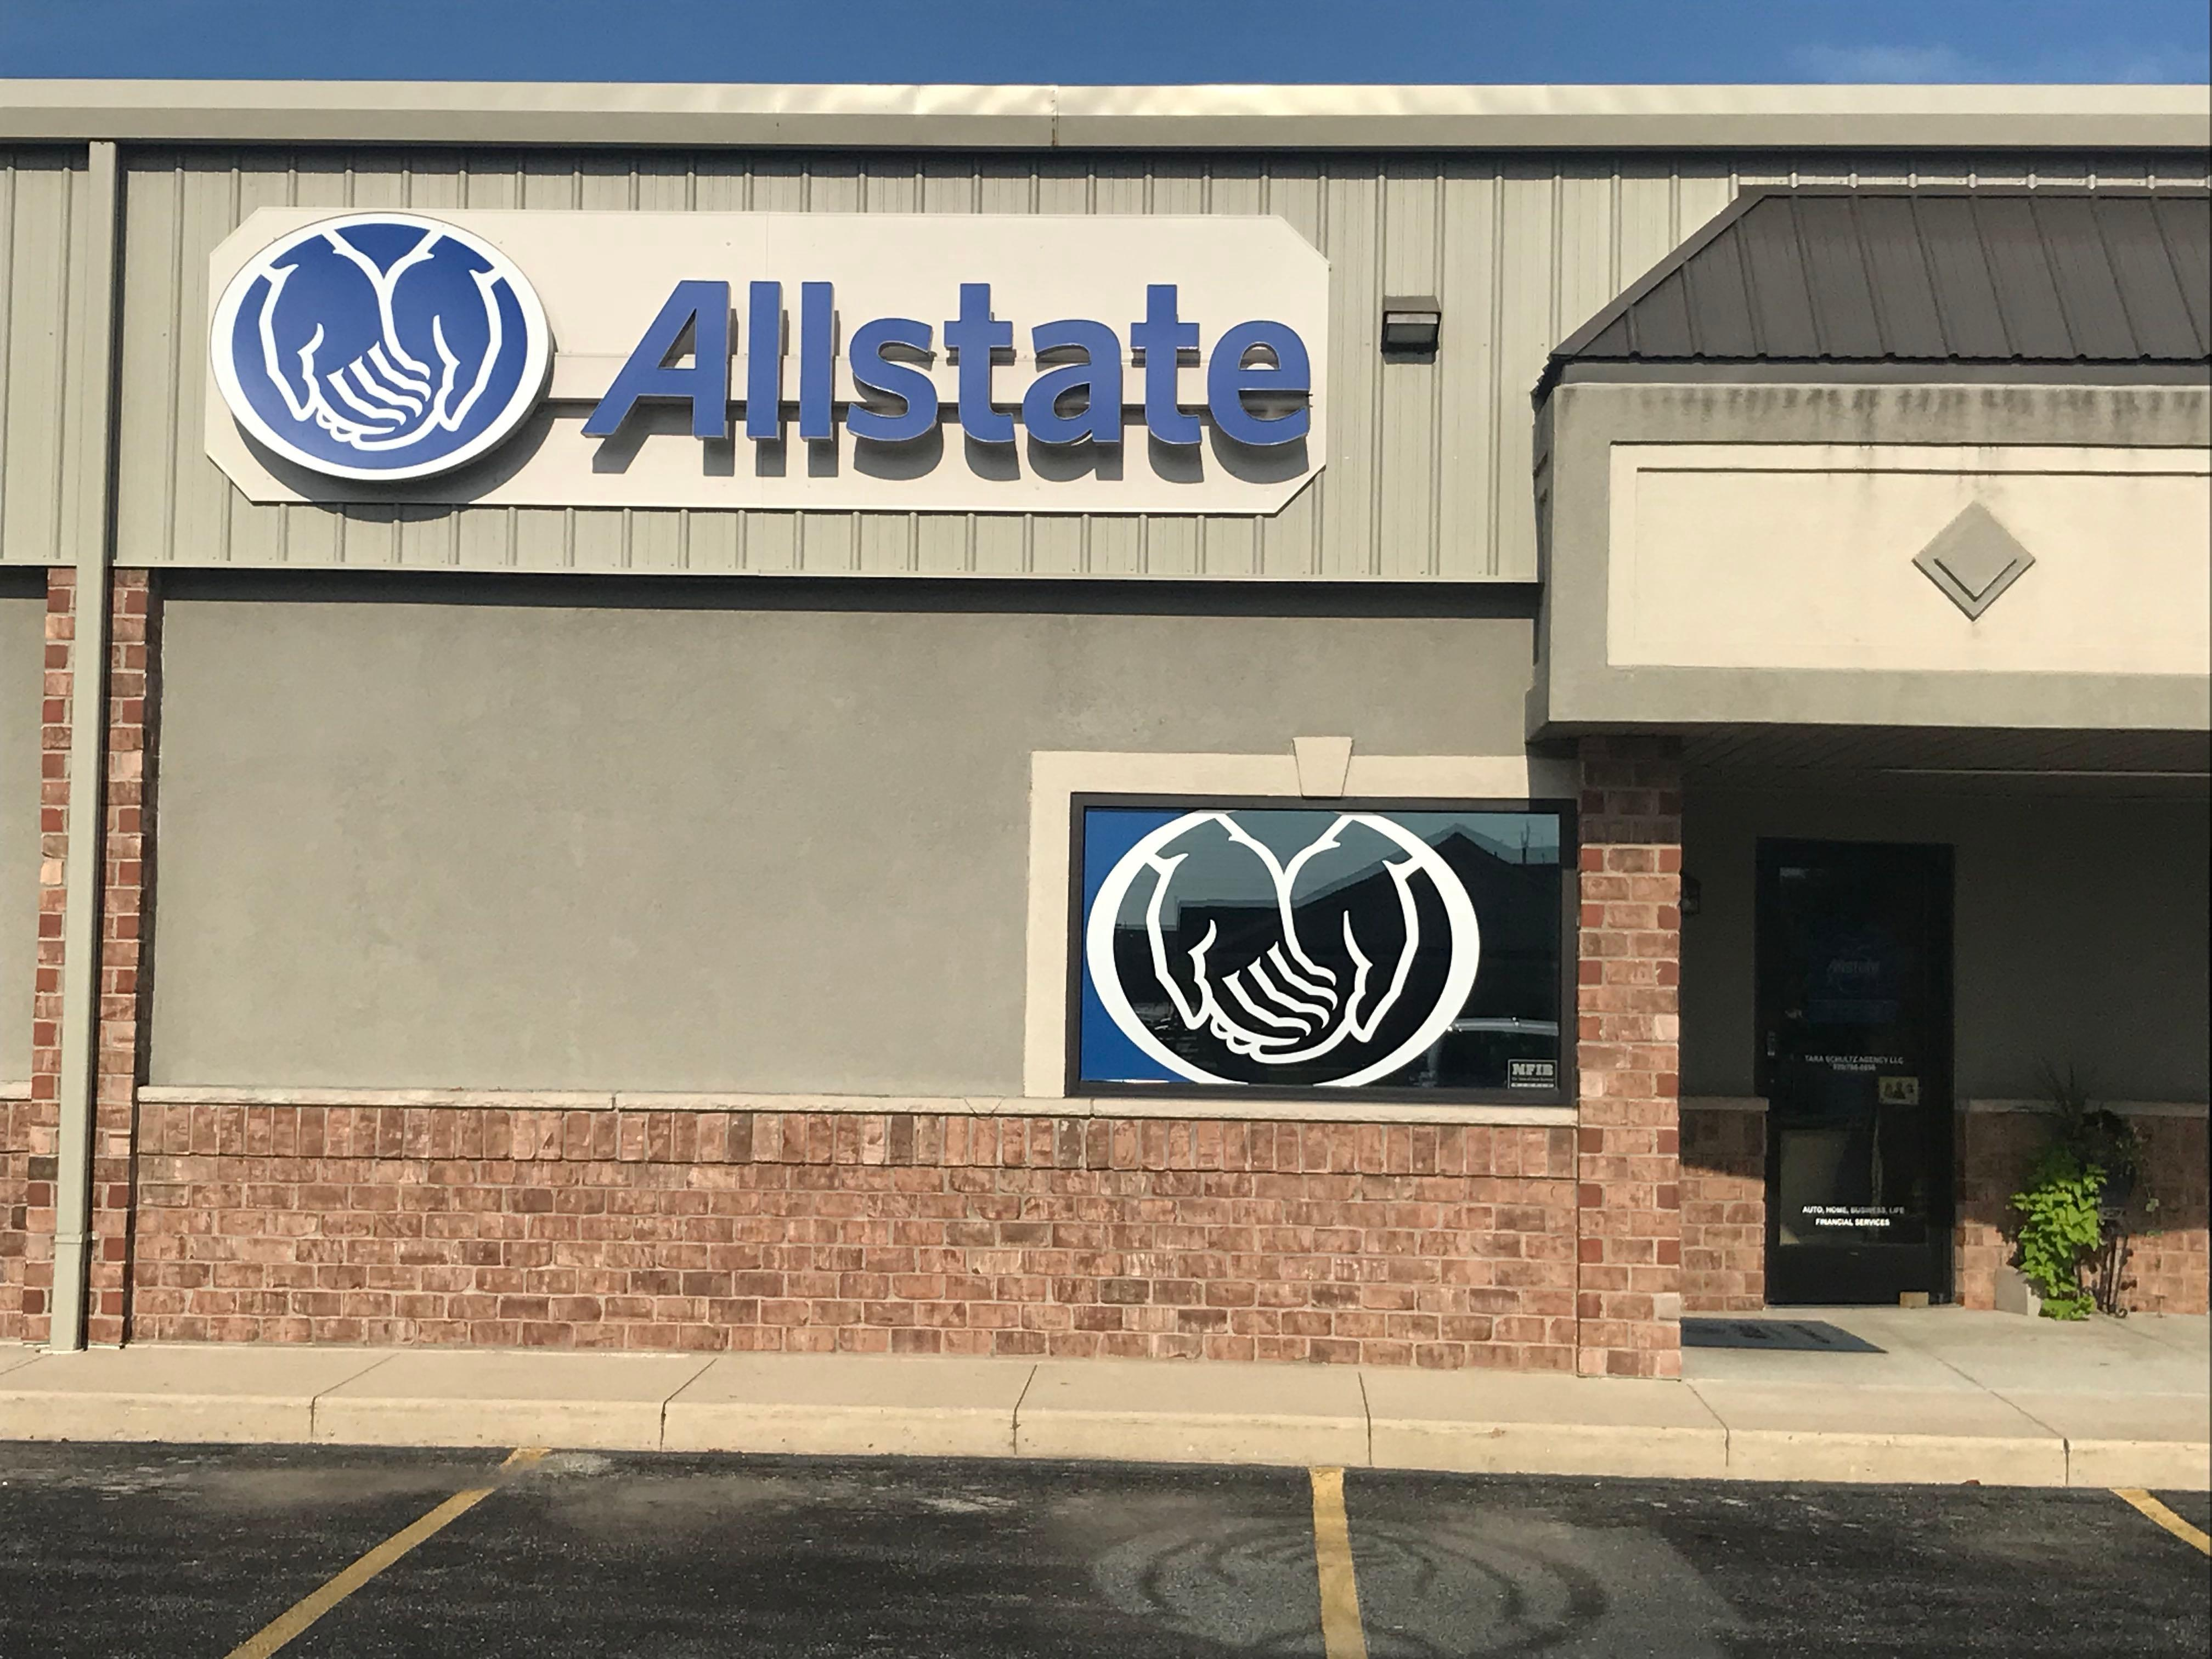 Kevin Heiting: Allstate Insurance image 2